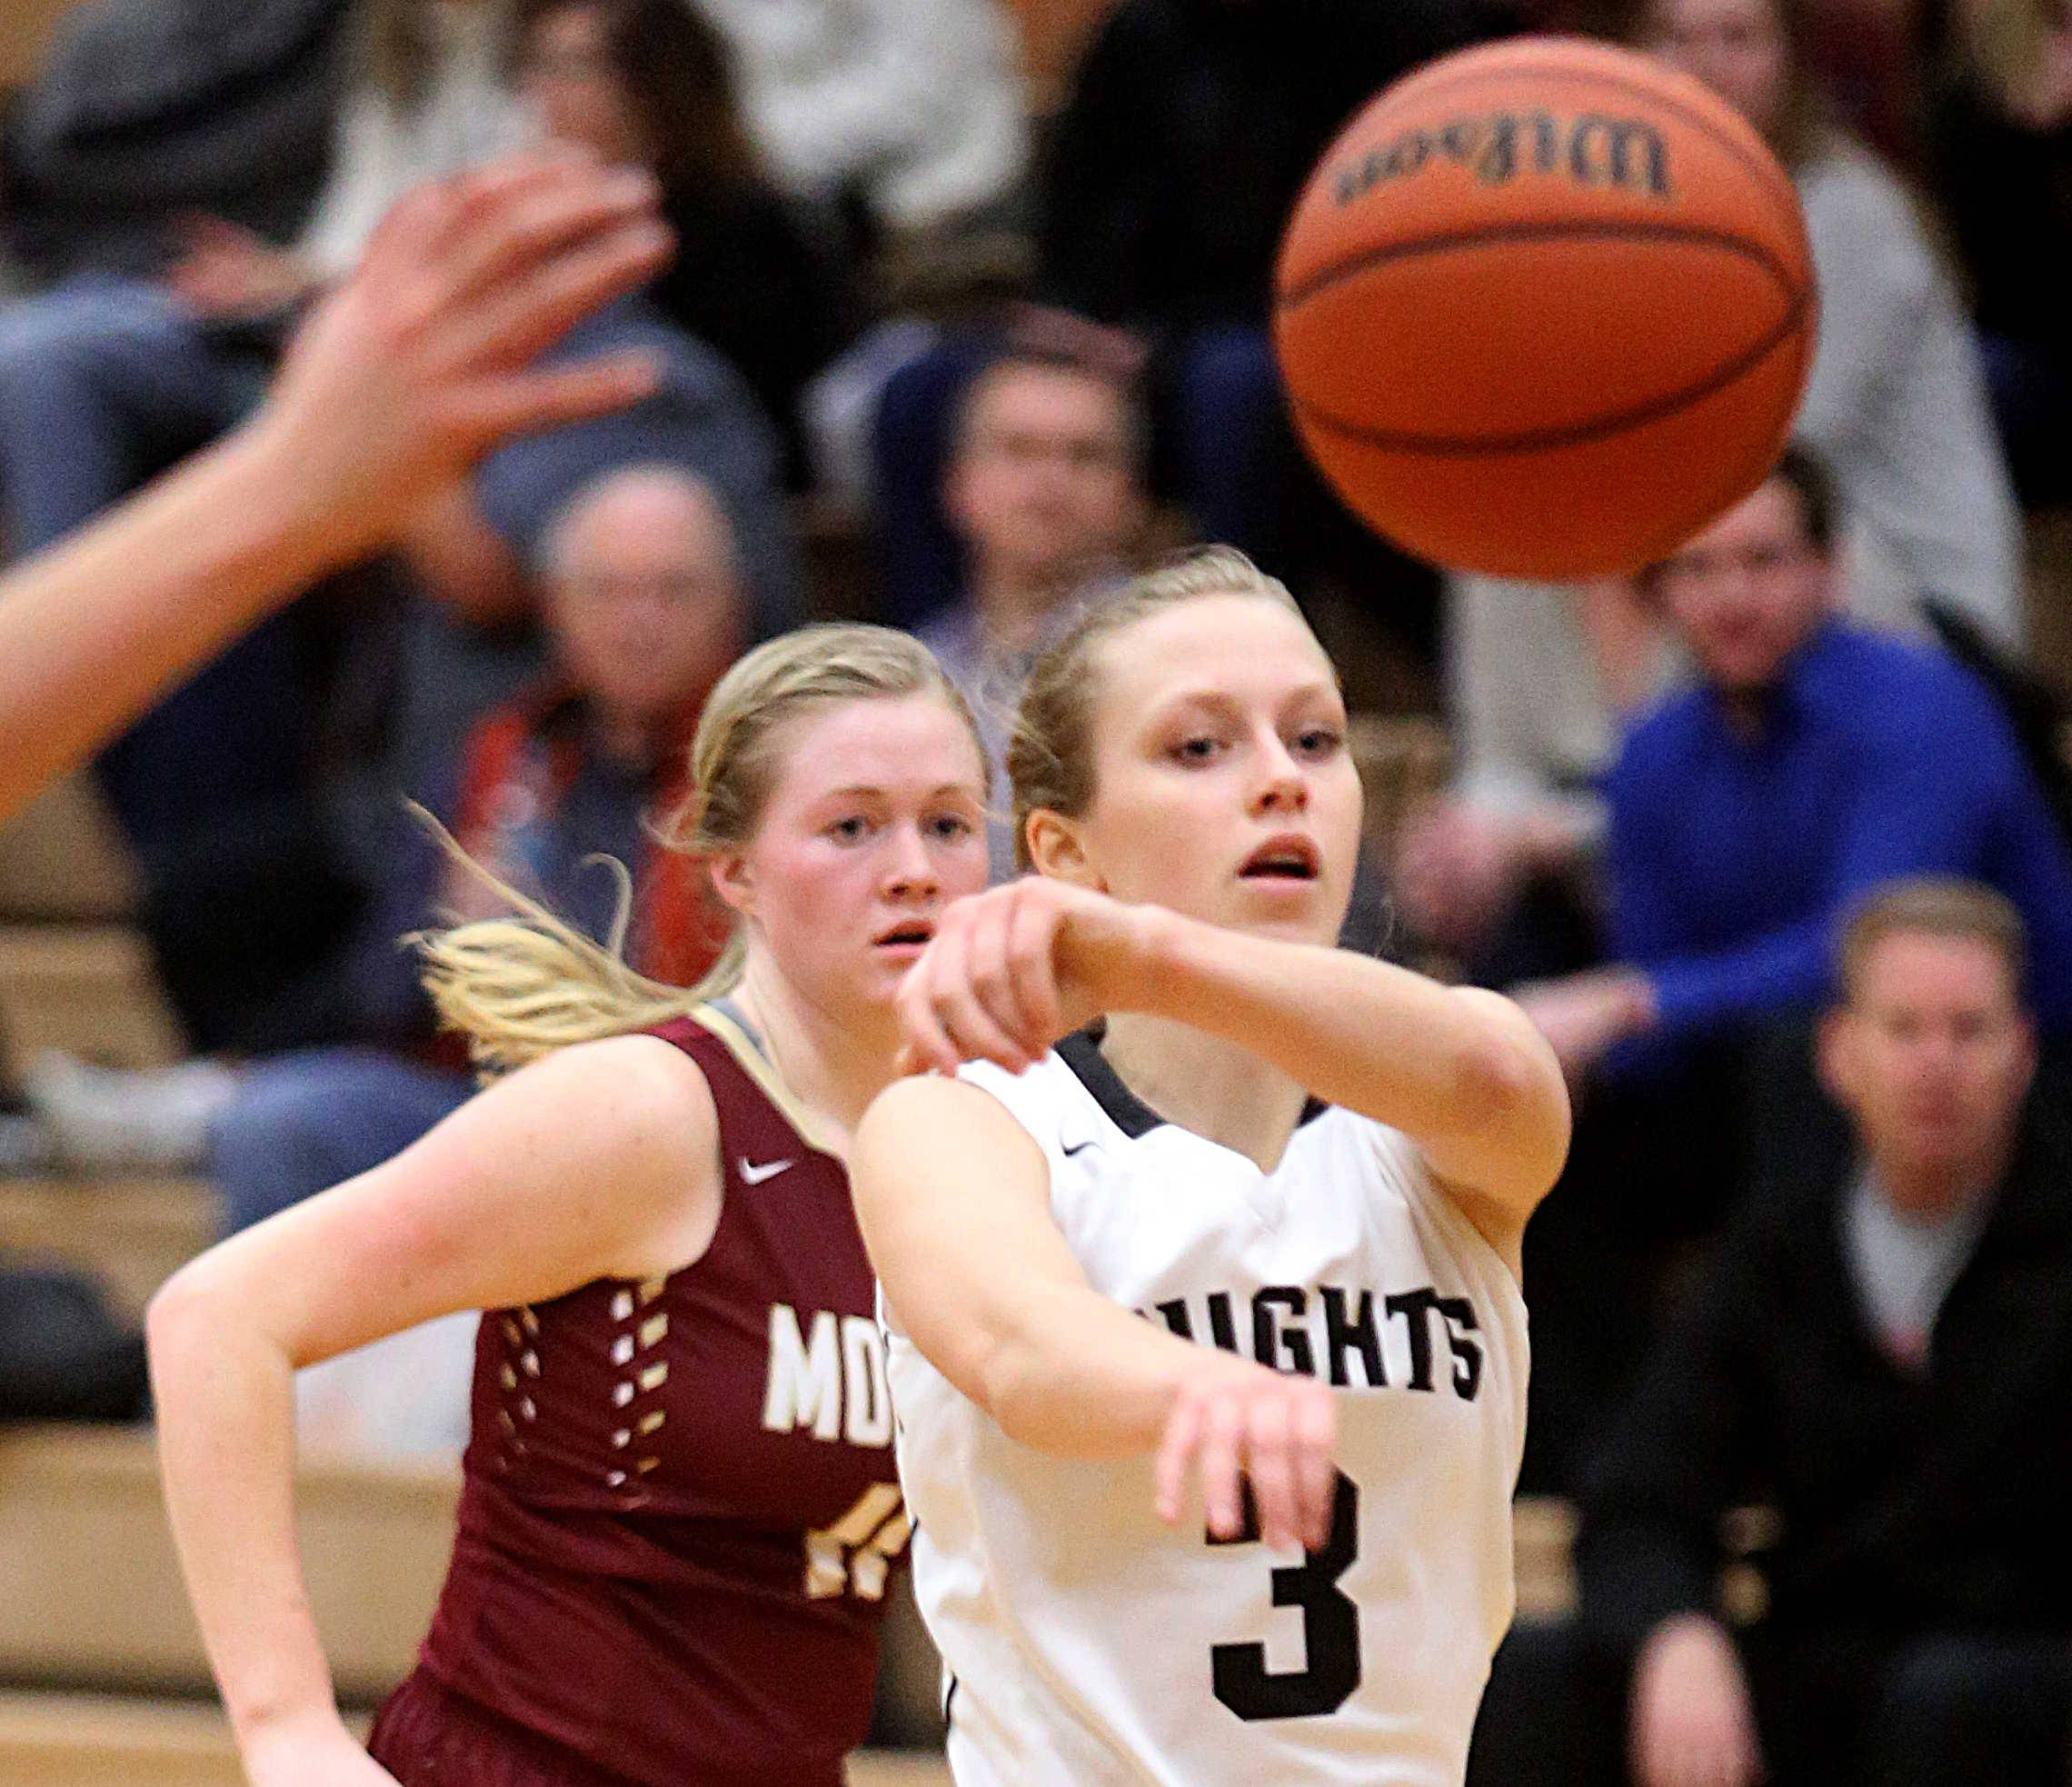 Kaneland's Jamie Martens, who made the game-winning free throws with 3.7 seconds left, passes the ball on a fast break against Morris at Kaneland Tuesday night.